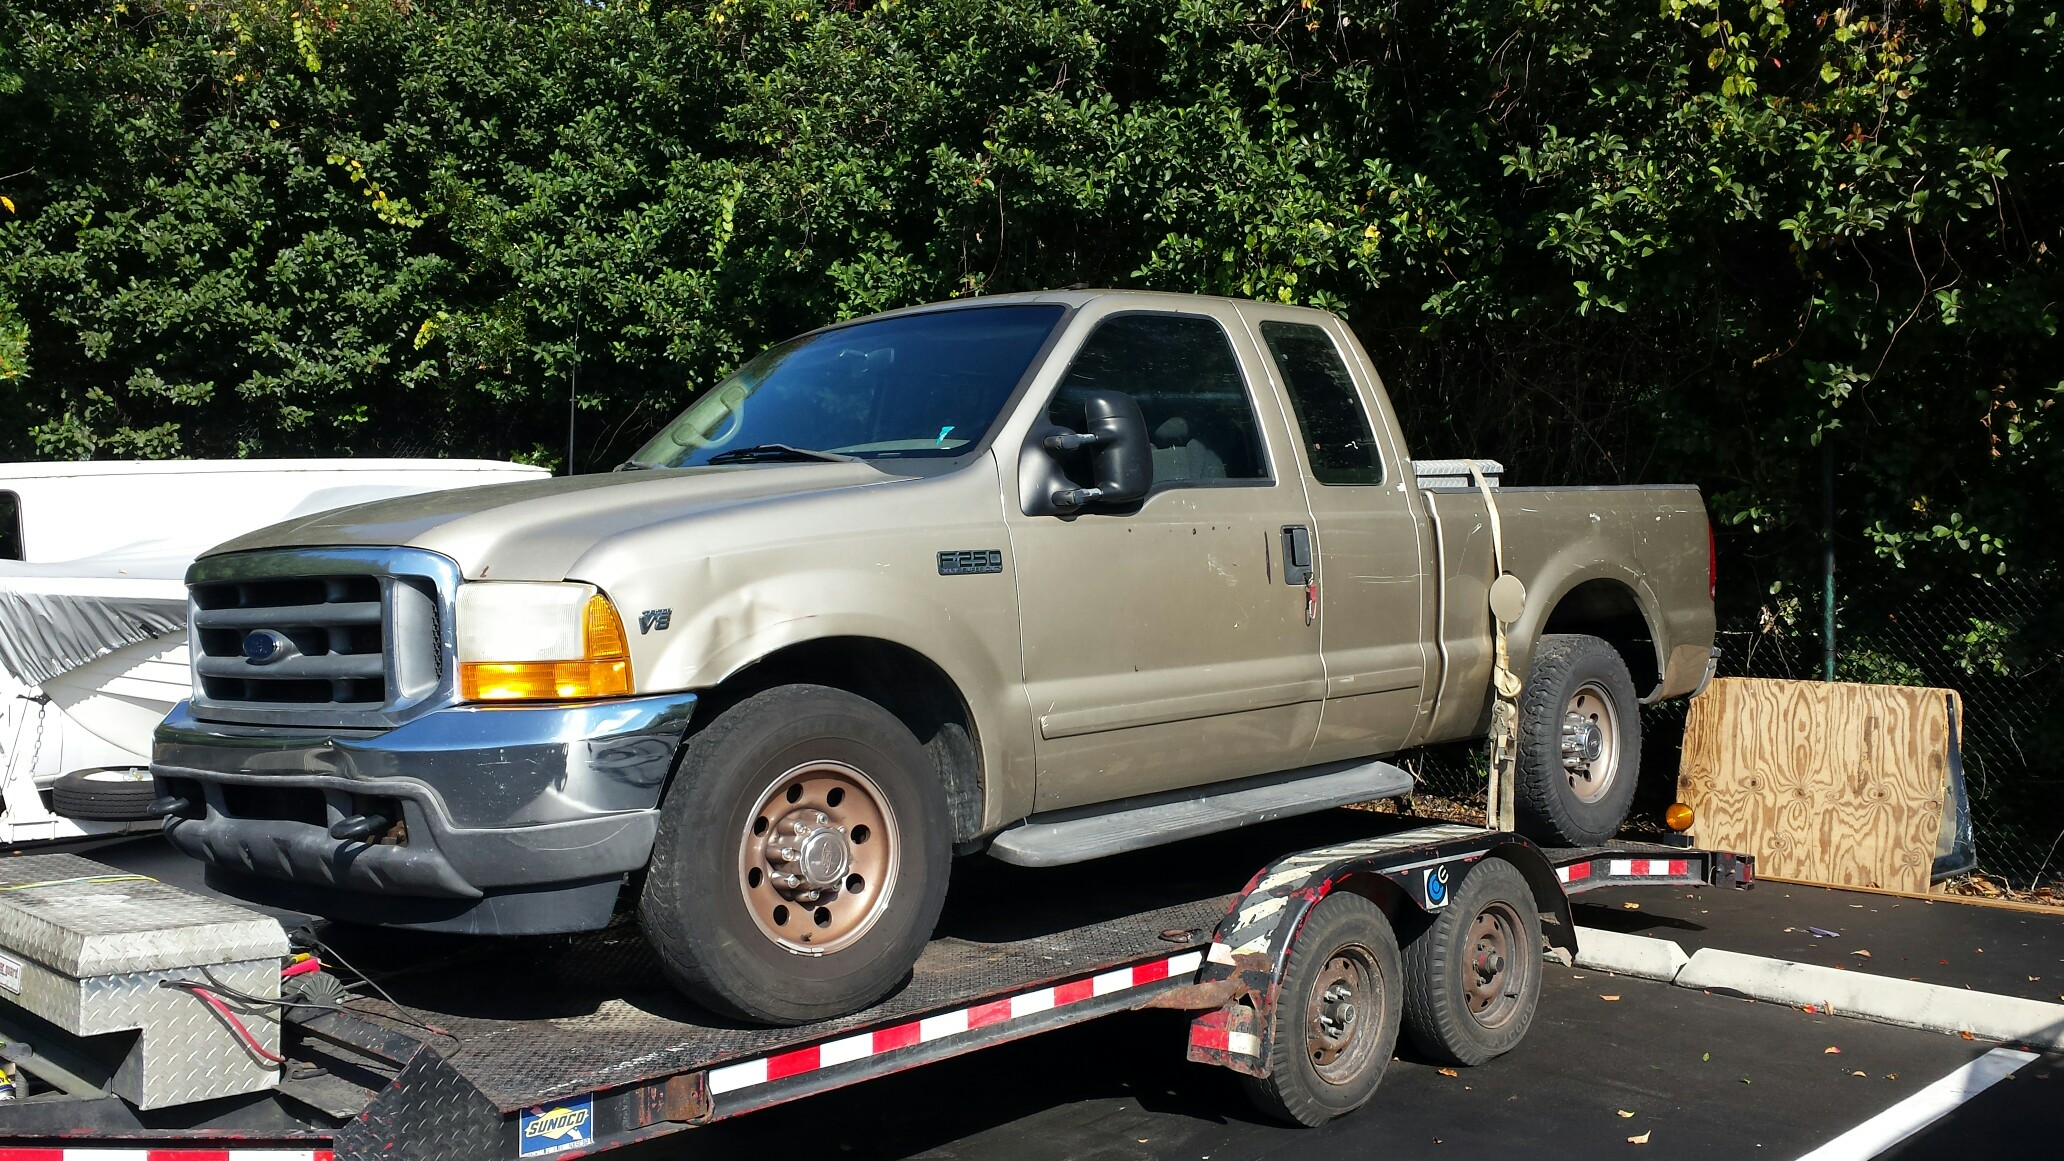 Ford F250 (Recently Purchased by Junk Cars Orlando, LLC)